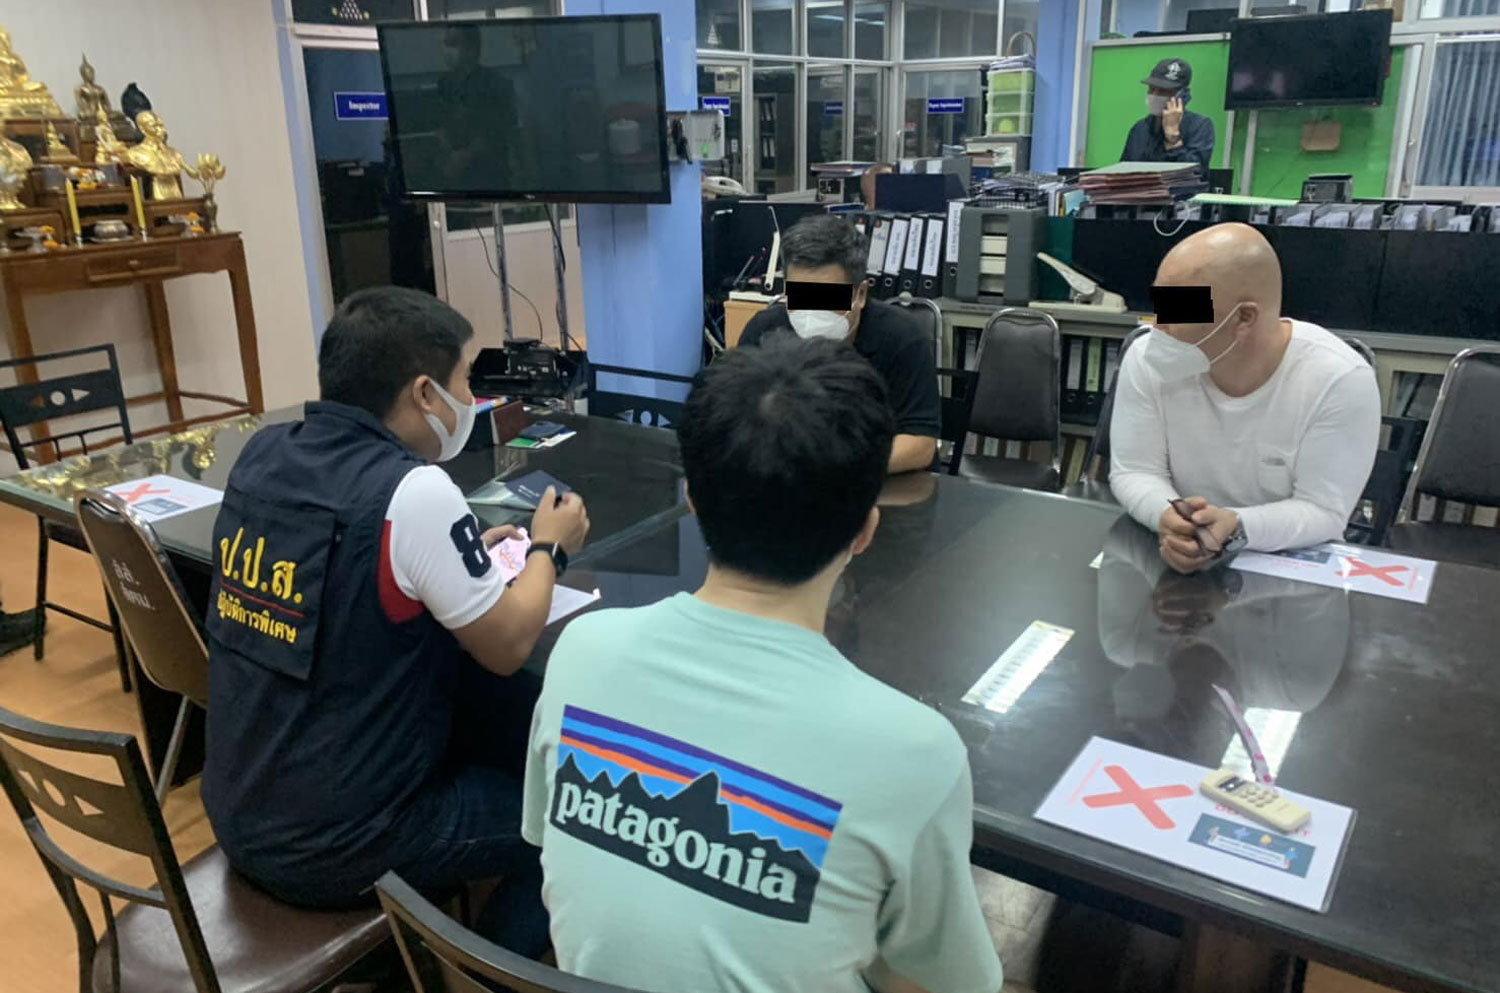 An ONCB official (left) interrogates Kim Chul yun, a South Korean national, following his arrest at a condominium room in Nonthaburi on Thursday. (Photo: ONCB)